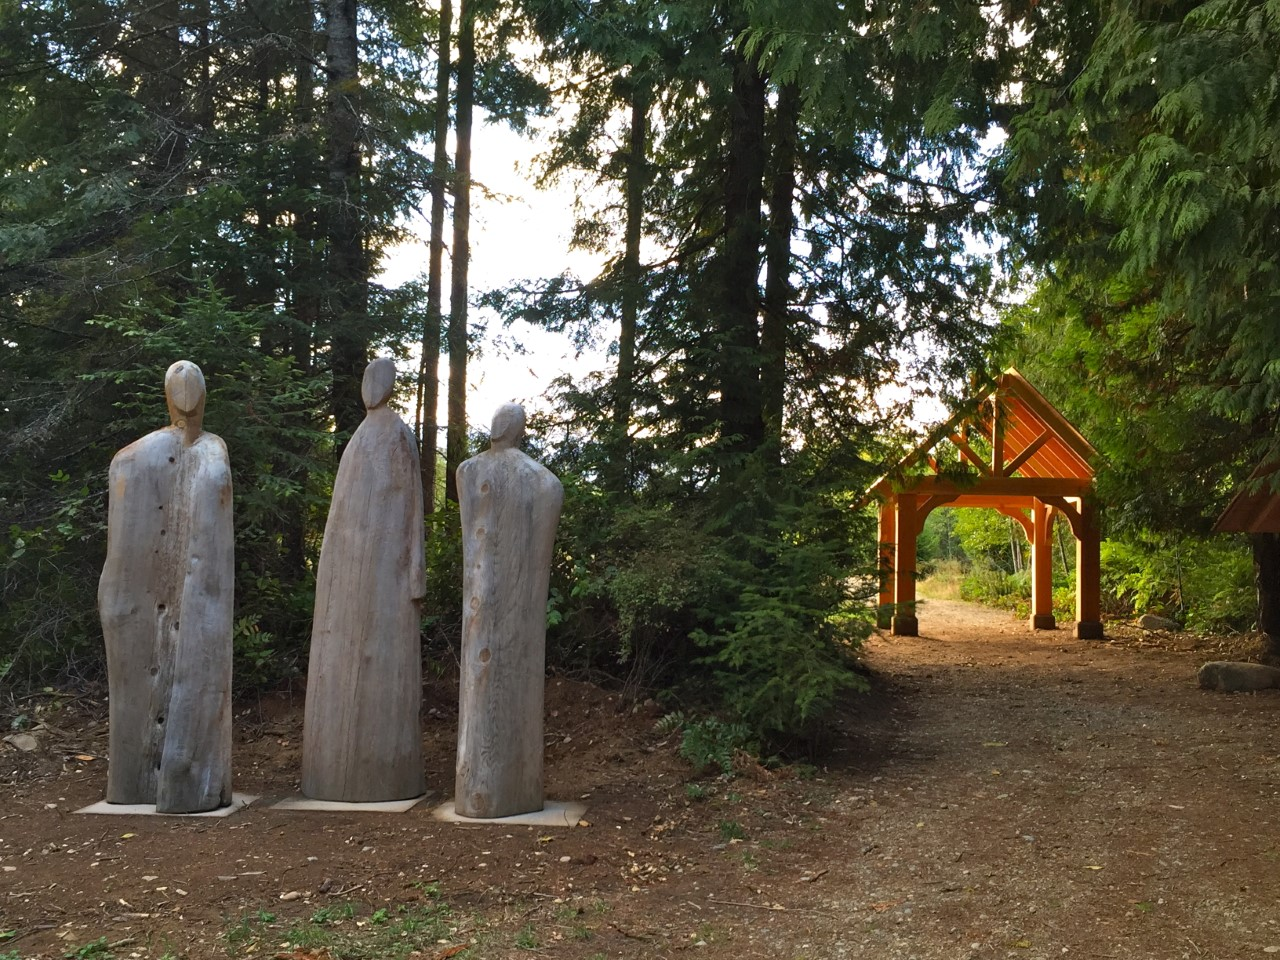 The entrance to Denman Island Natural Burial Cemetery